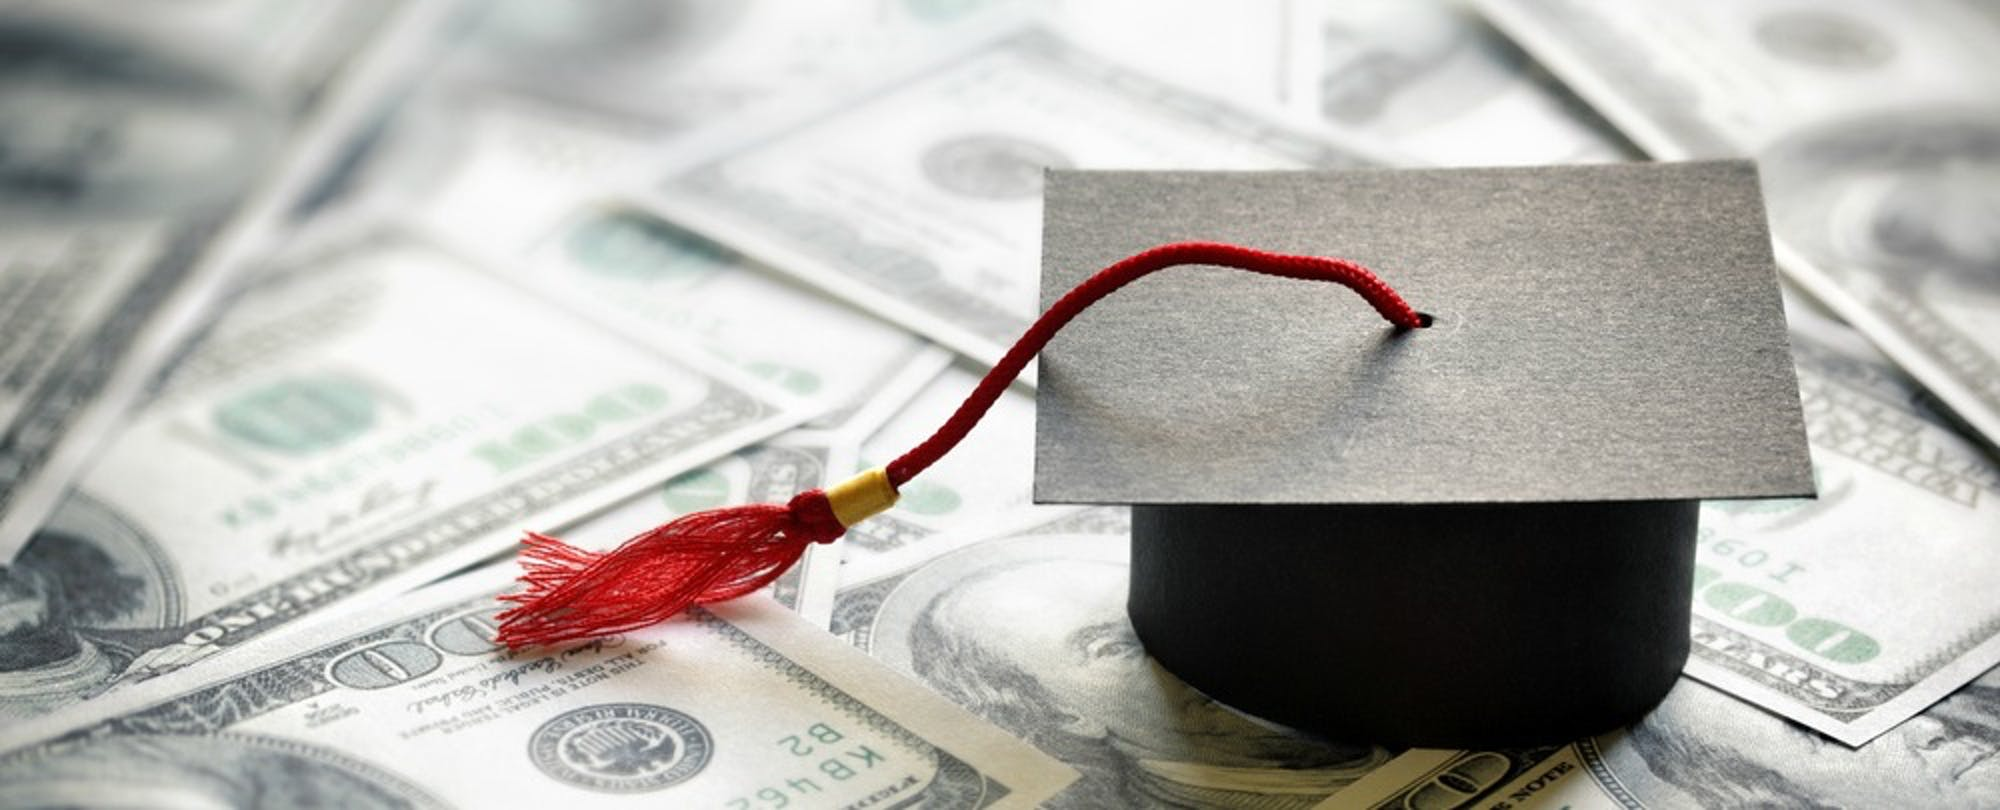 The Biggest Threat for Startups? Student Loan Debt